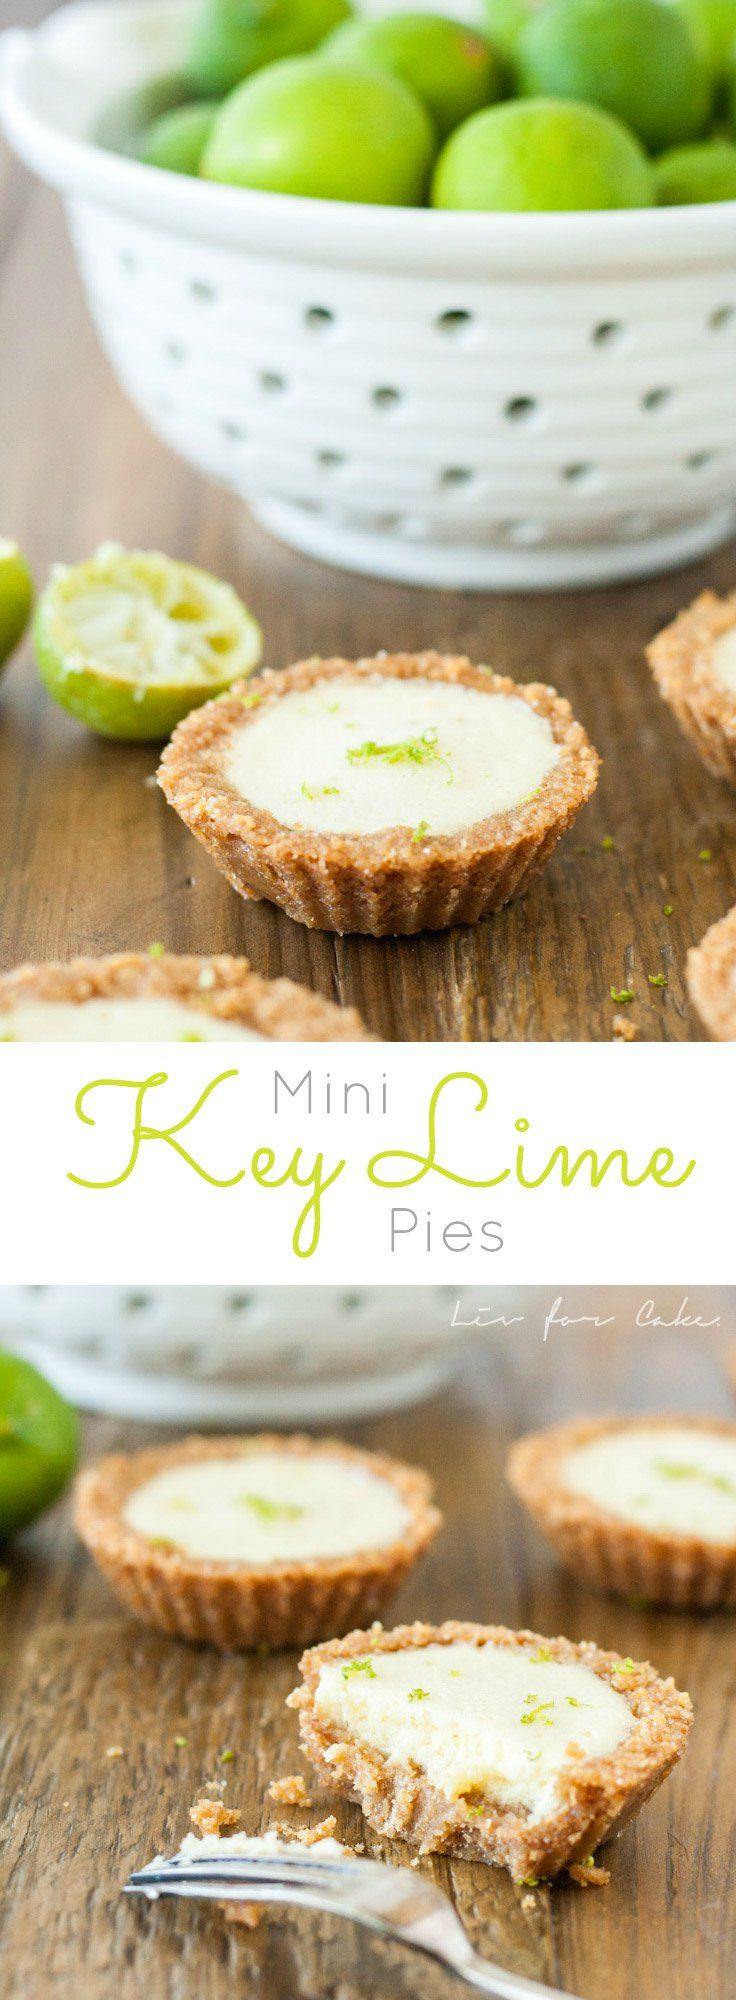 These Mini Key Lime Pies are the perfect bite-sized version of traditional Key Lime Pie. | livforcake.com